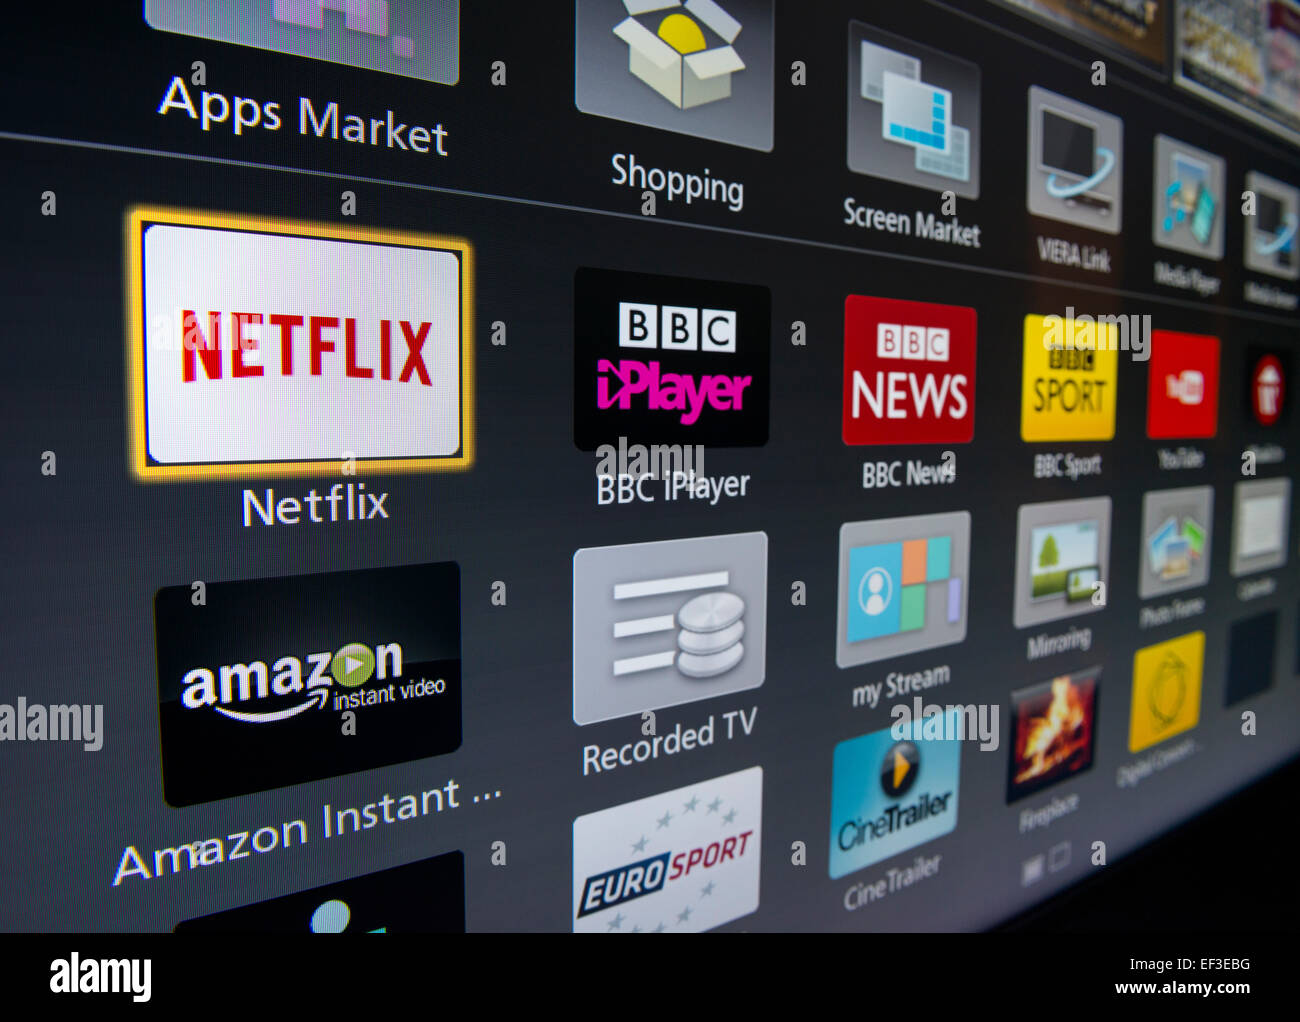 The apps screen on a smart TV - Stock Image